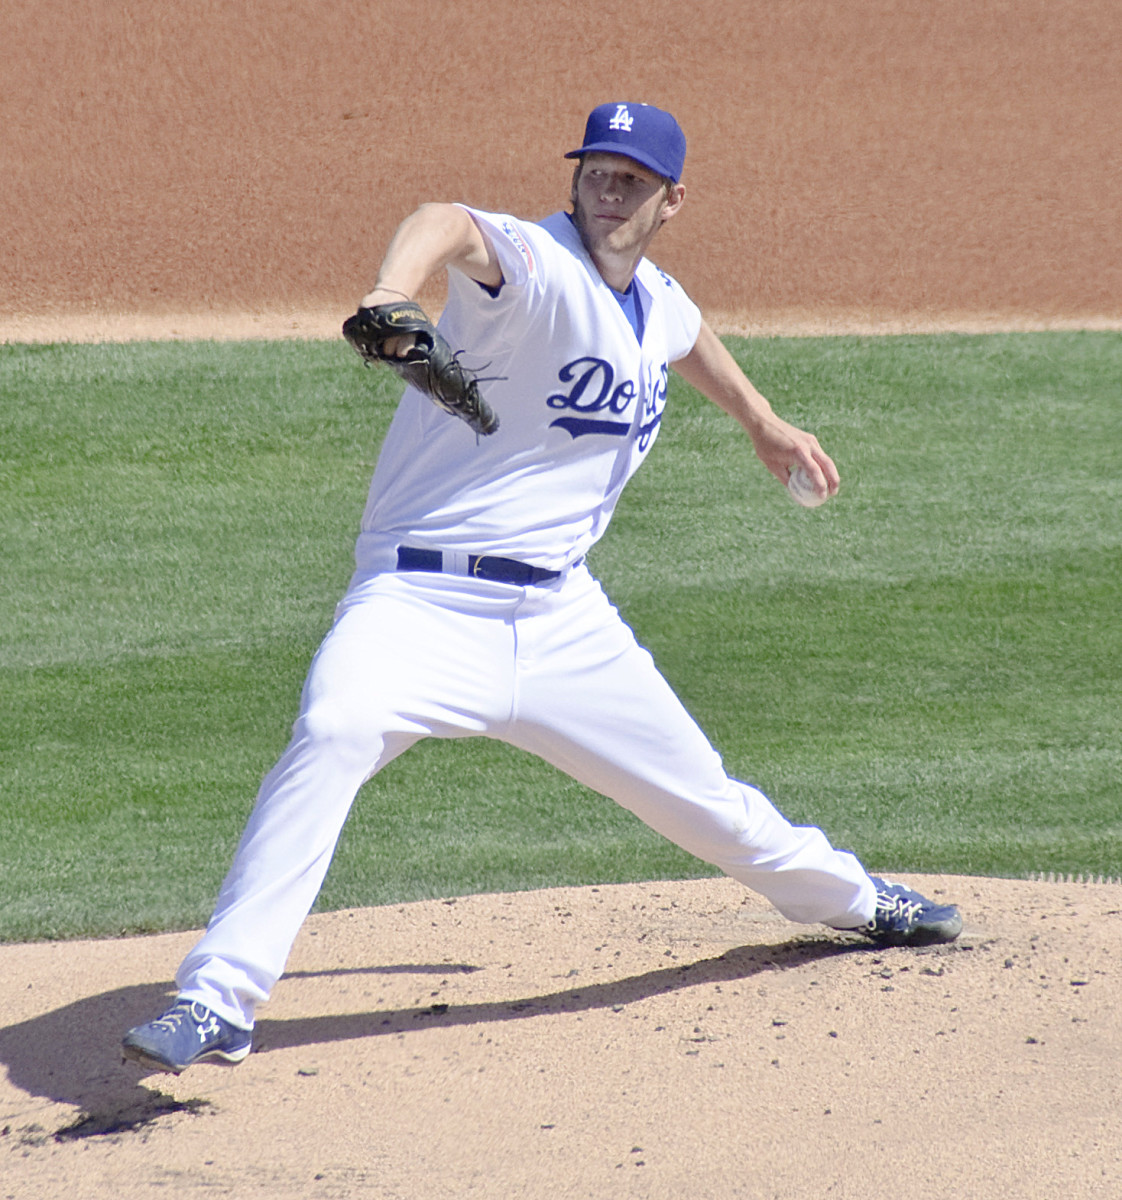 Los Angeles Dodgers pitcher Clayton Kershaw fires a pitch during the 2010 season. Kershaw is currently among the best pitchers in baseball.